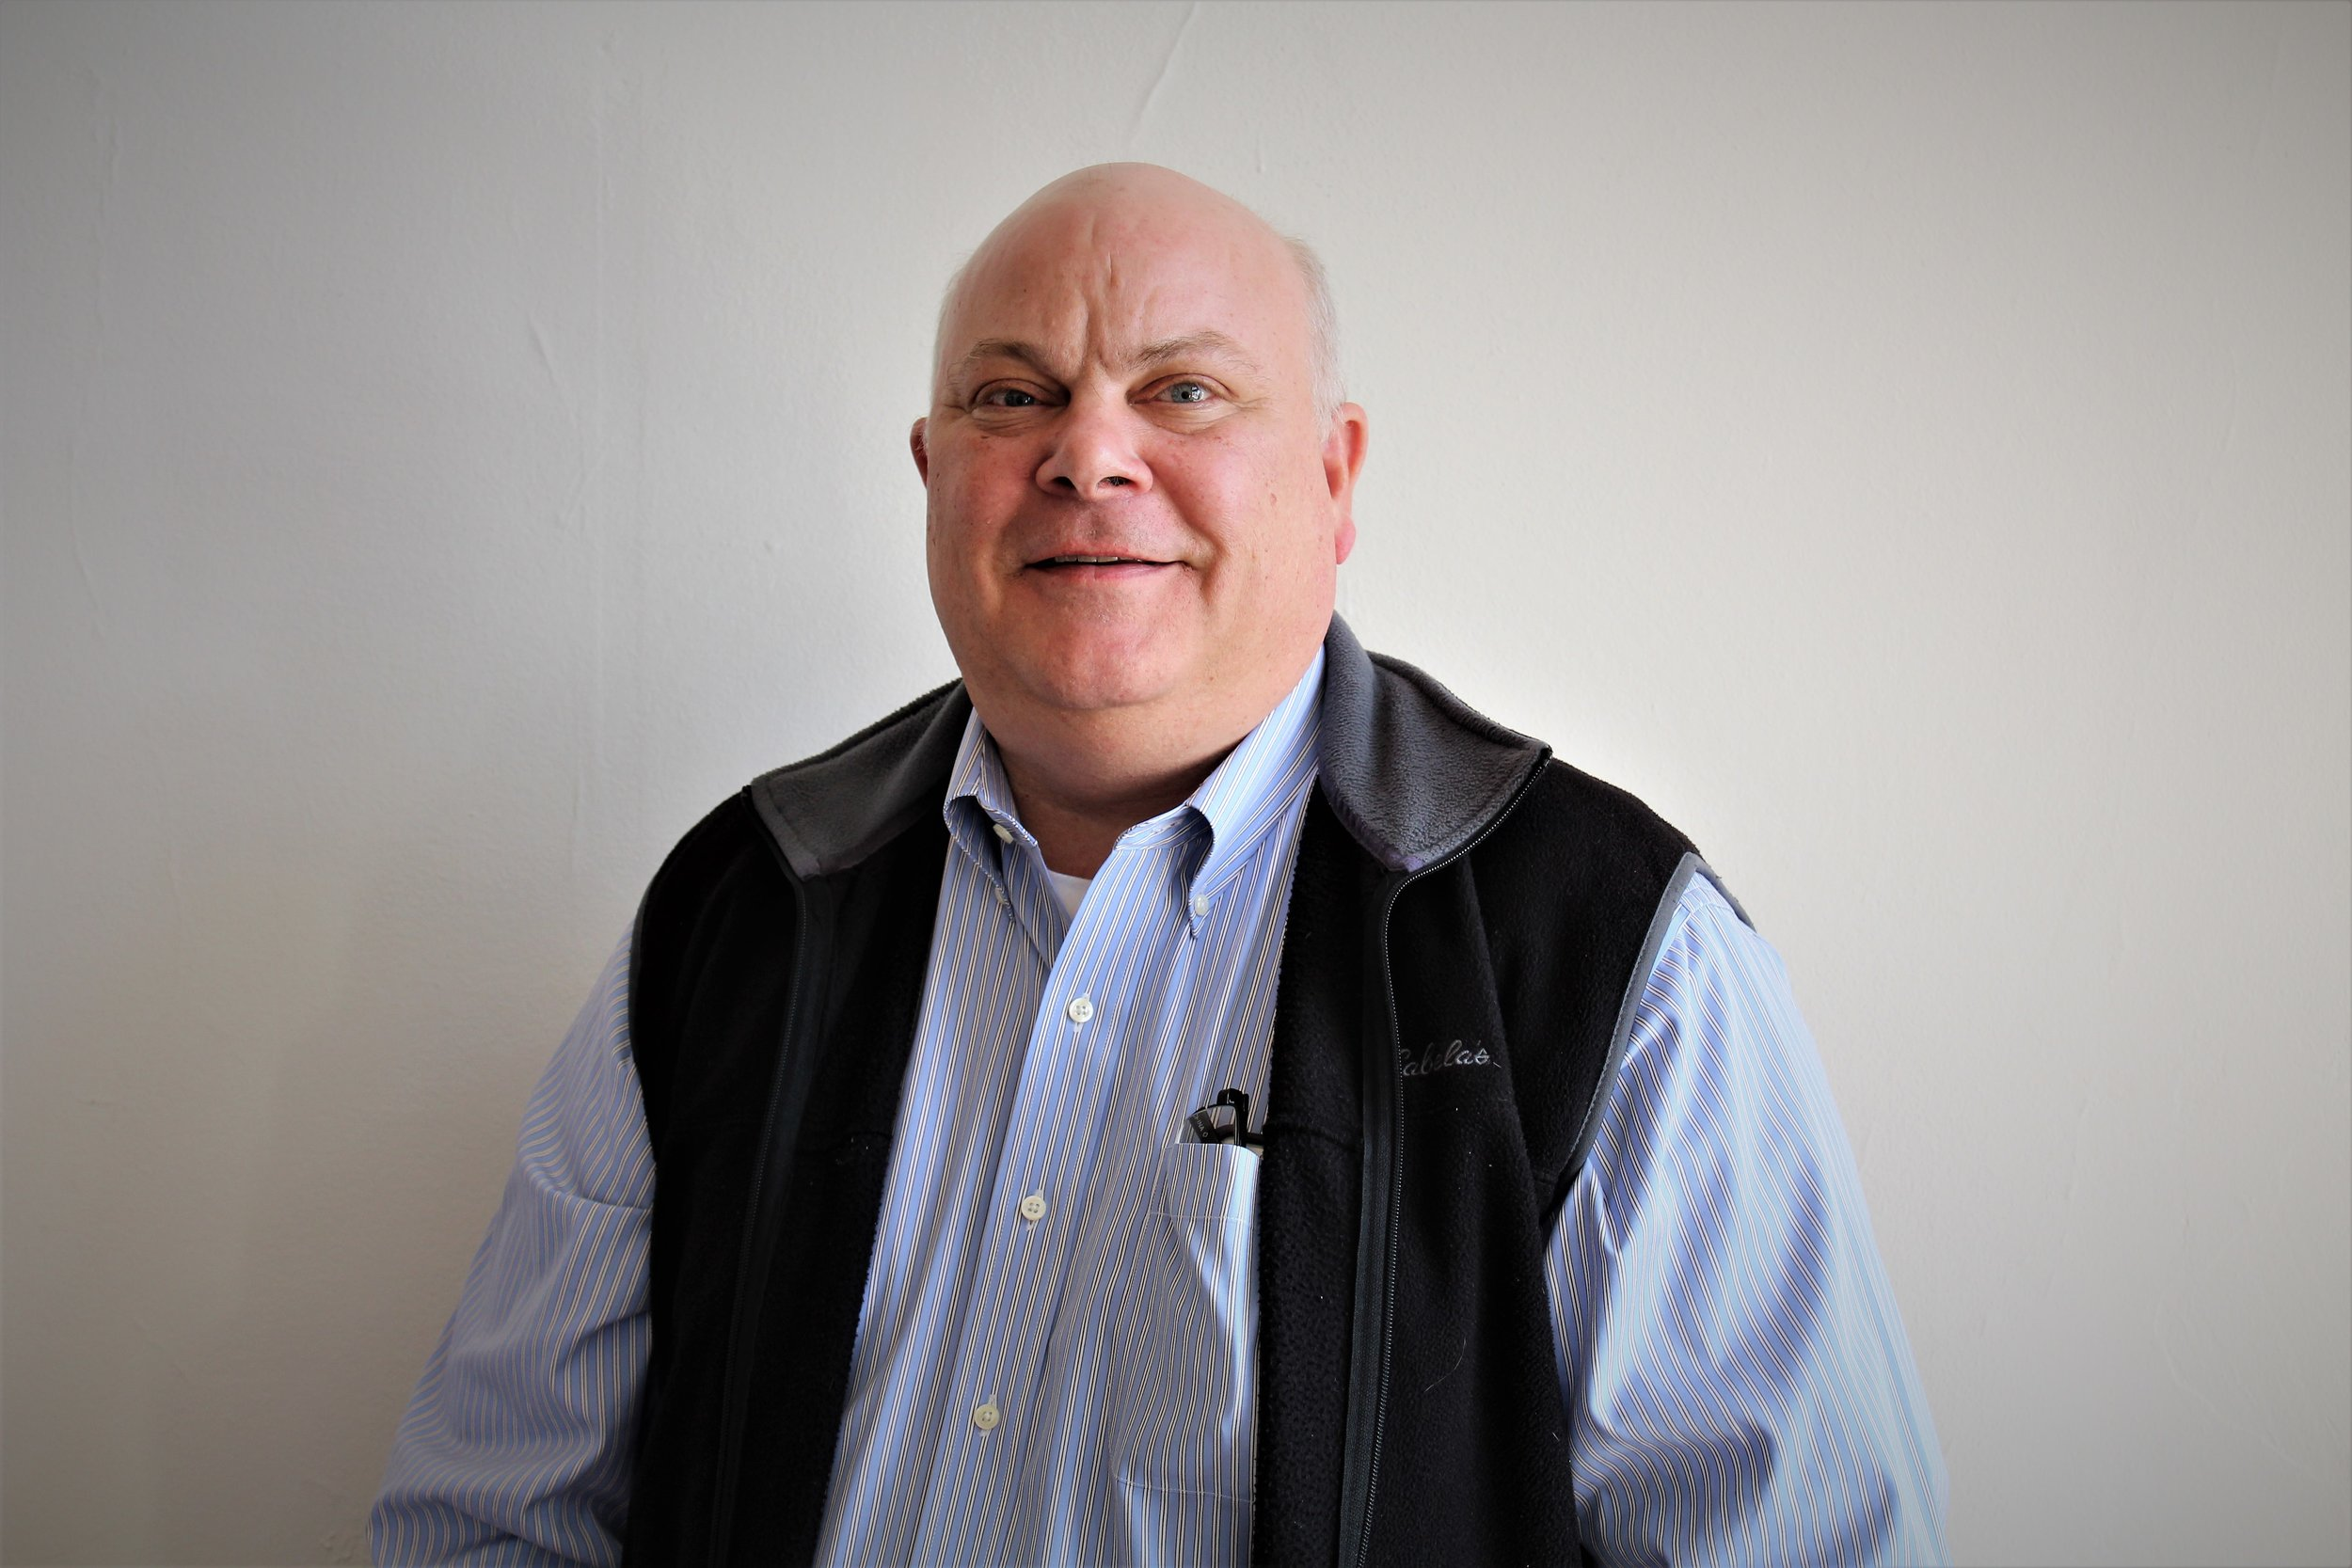 Larry Gundrum has served on Green Lake Renewal's board of directors for the past two years.